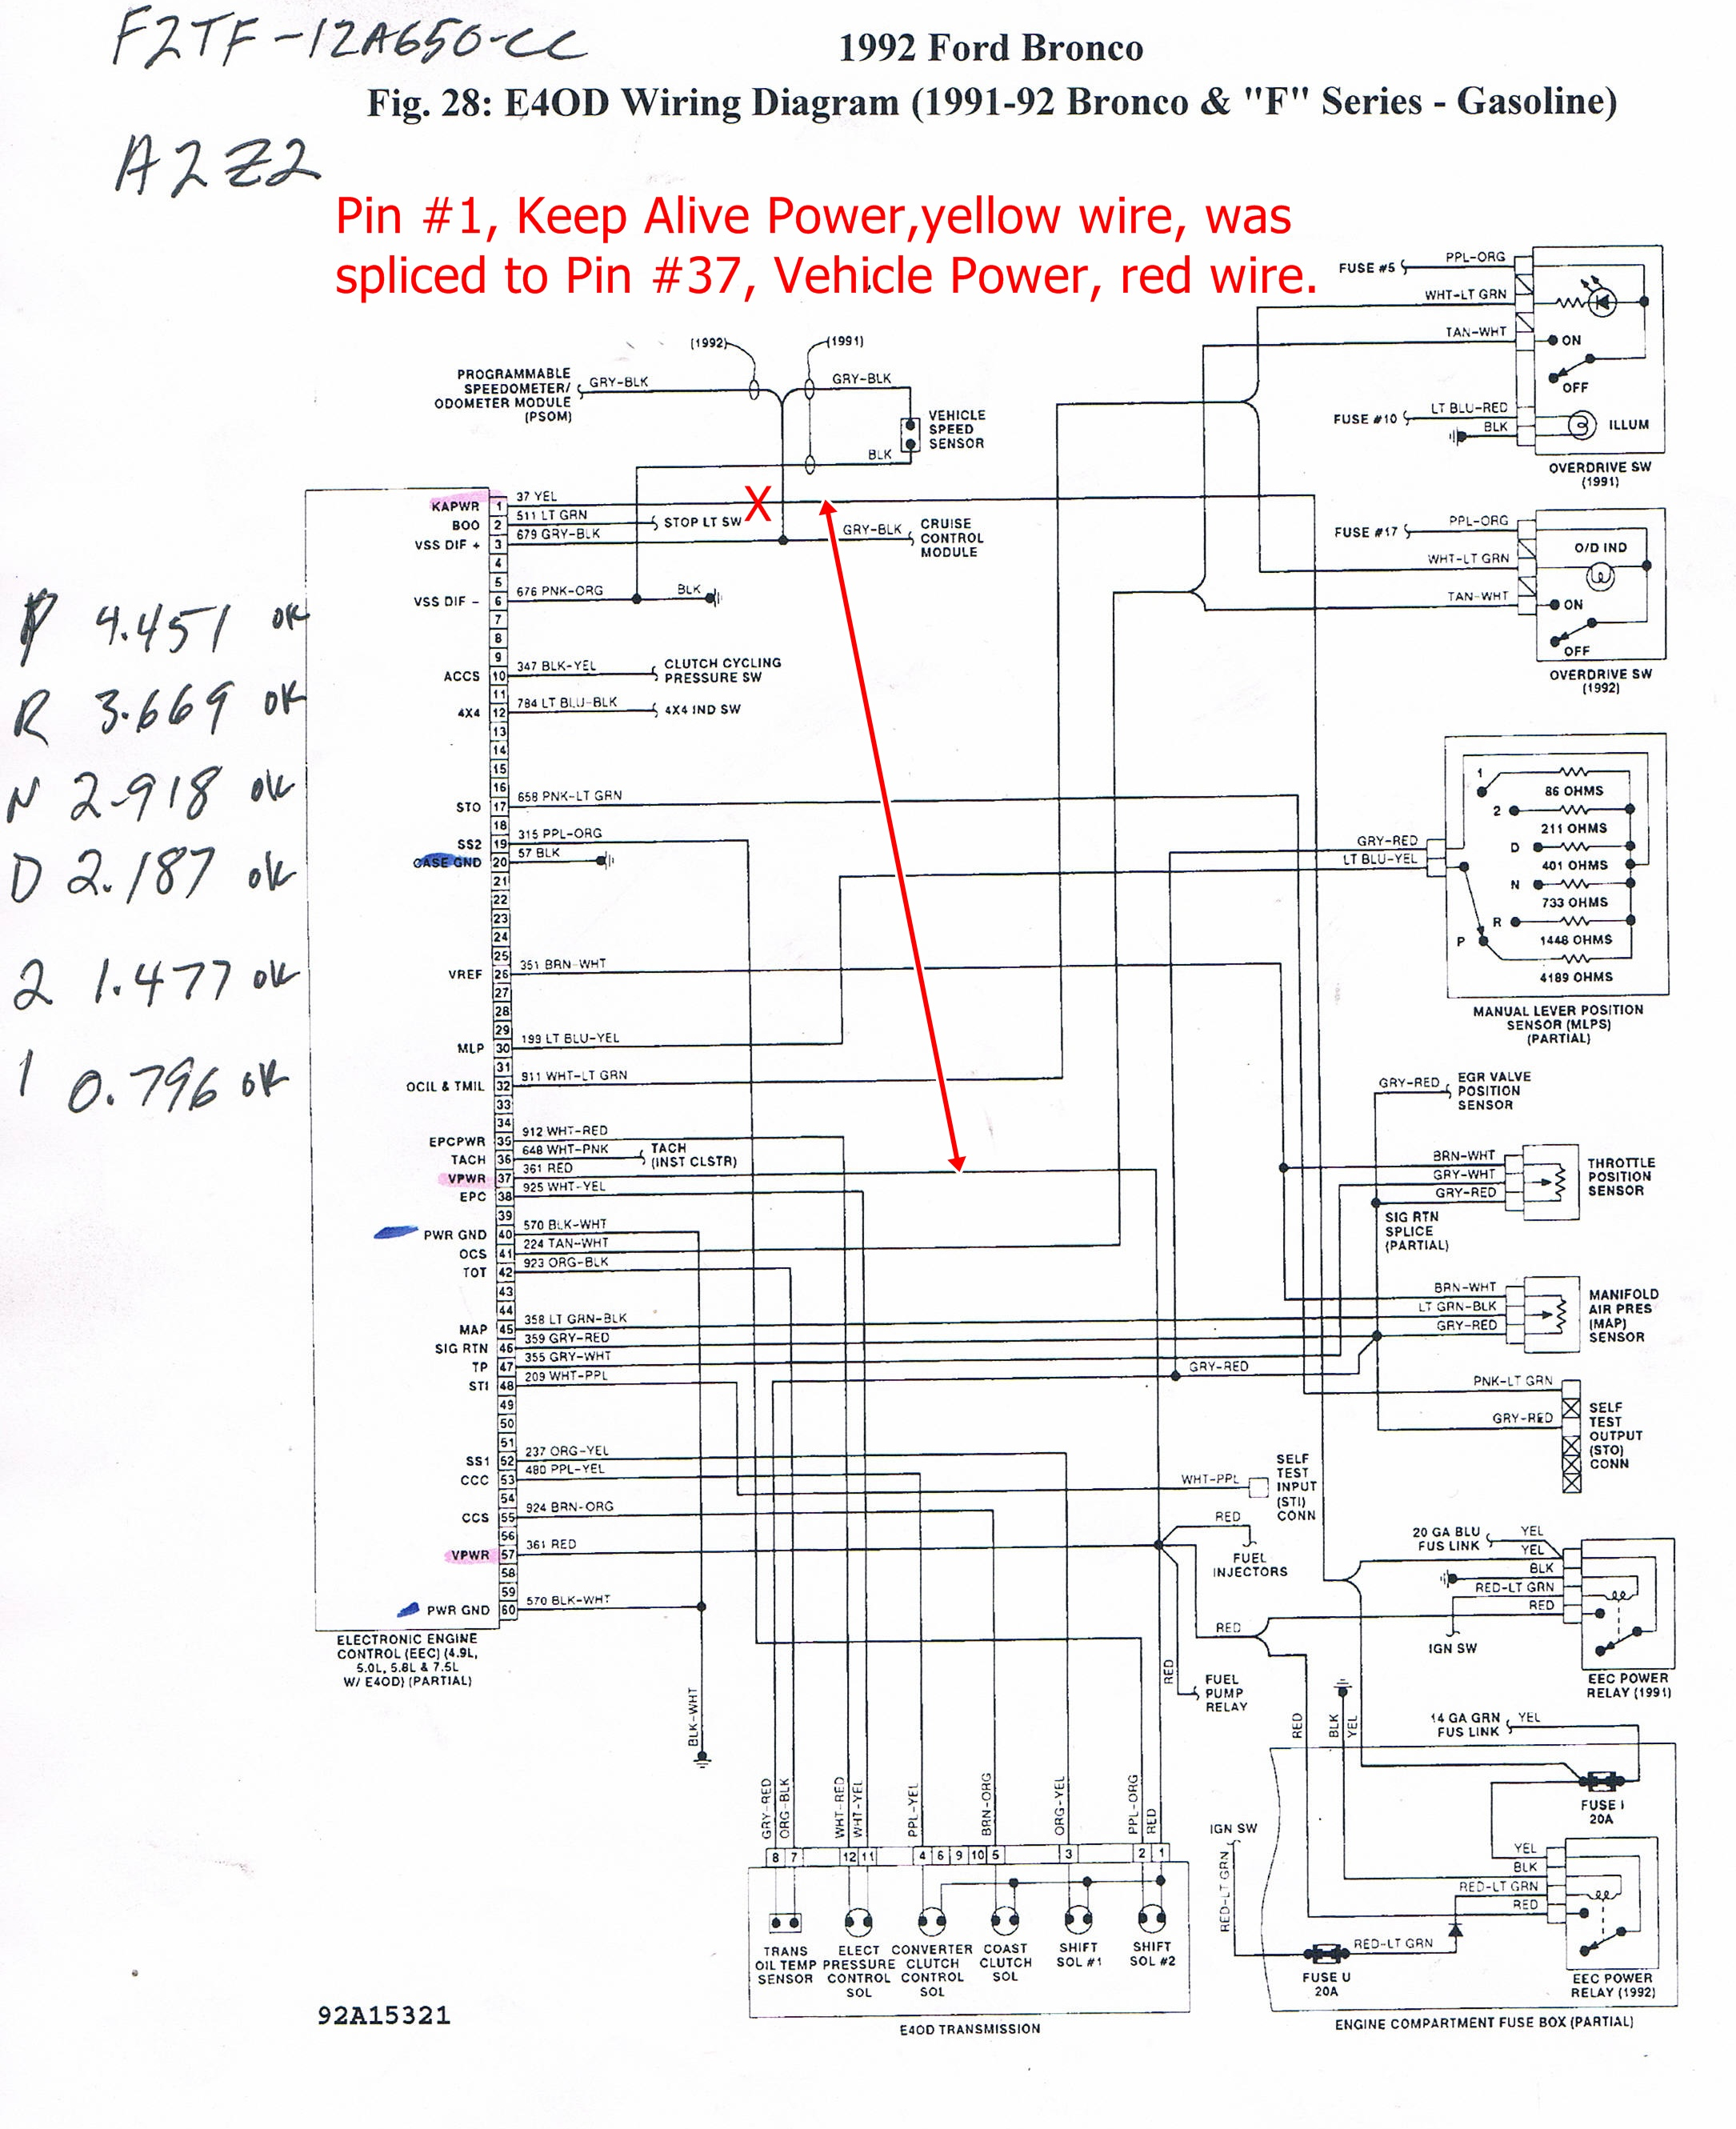 wire diagram january 2013 the transletter 2005 pontiac vibe wiring schematic at panicattacktreatment.co